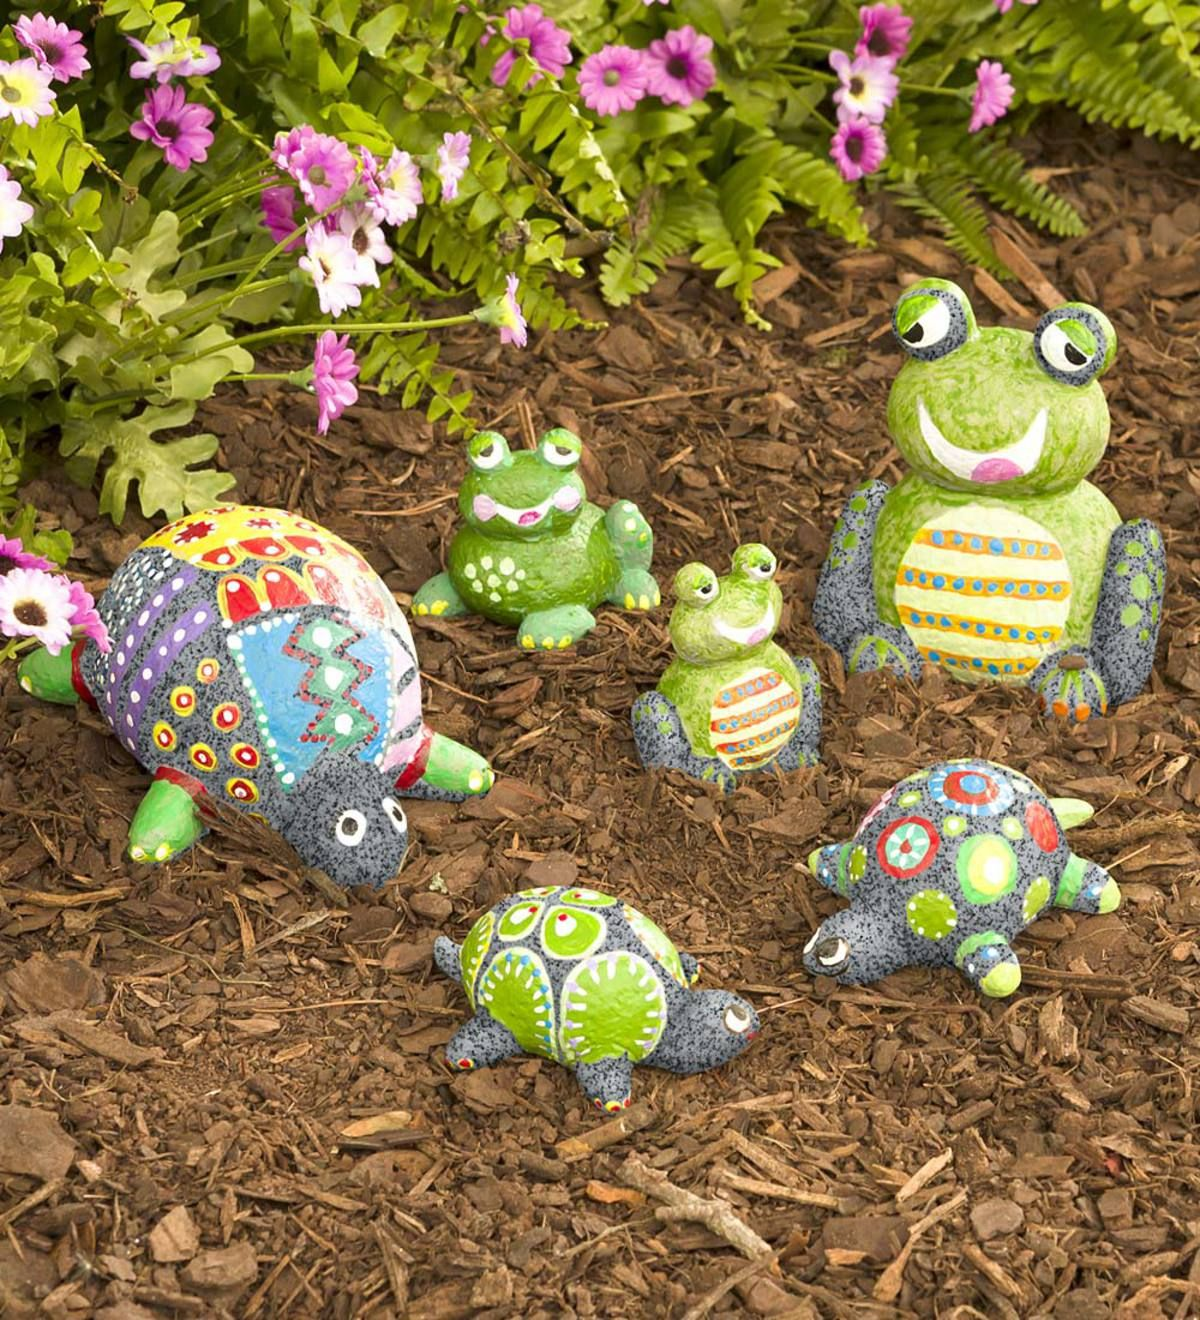 Color Pops Paint Your Own Rock Pets Turtles And Frogs 12 Ages Hearthsong Turtle Painting Turtle Painted Rocks Rock Decor